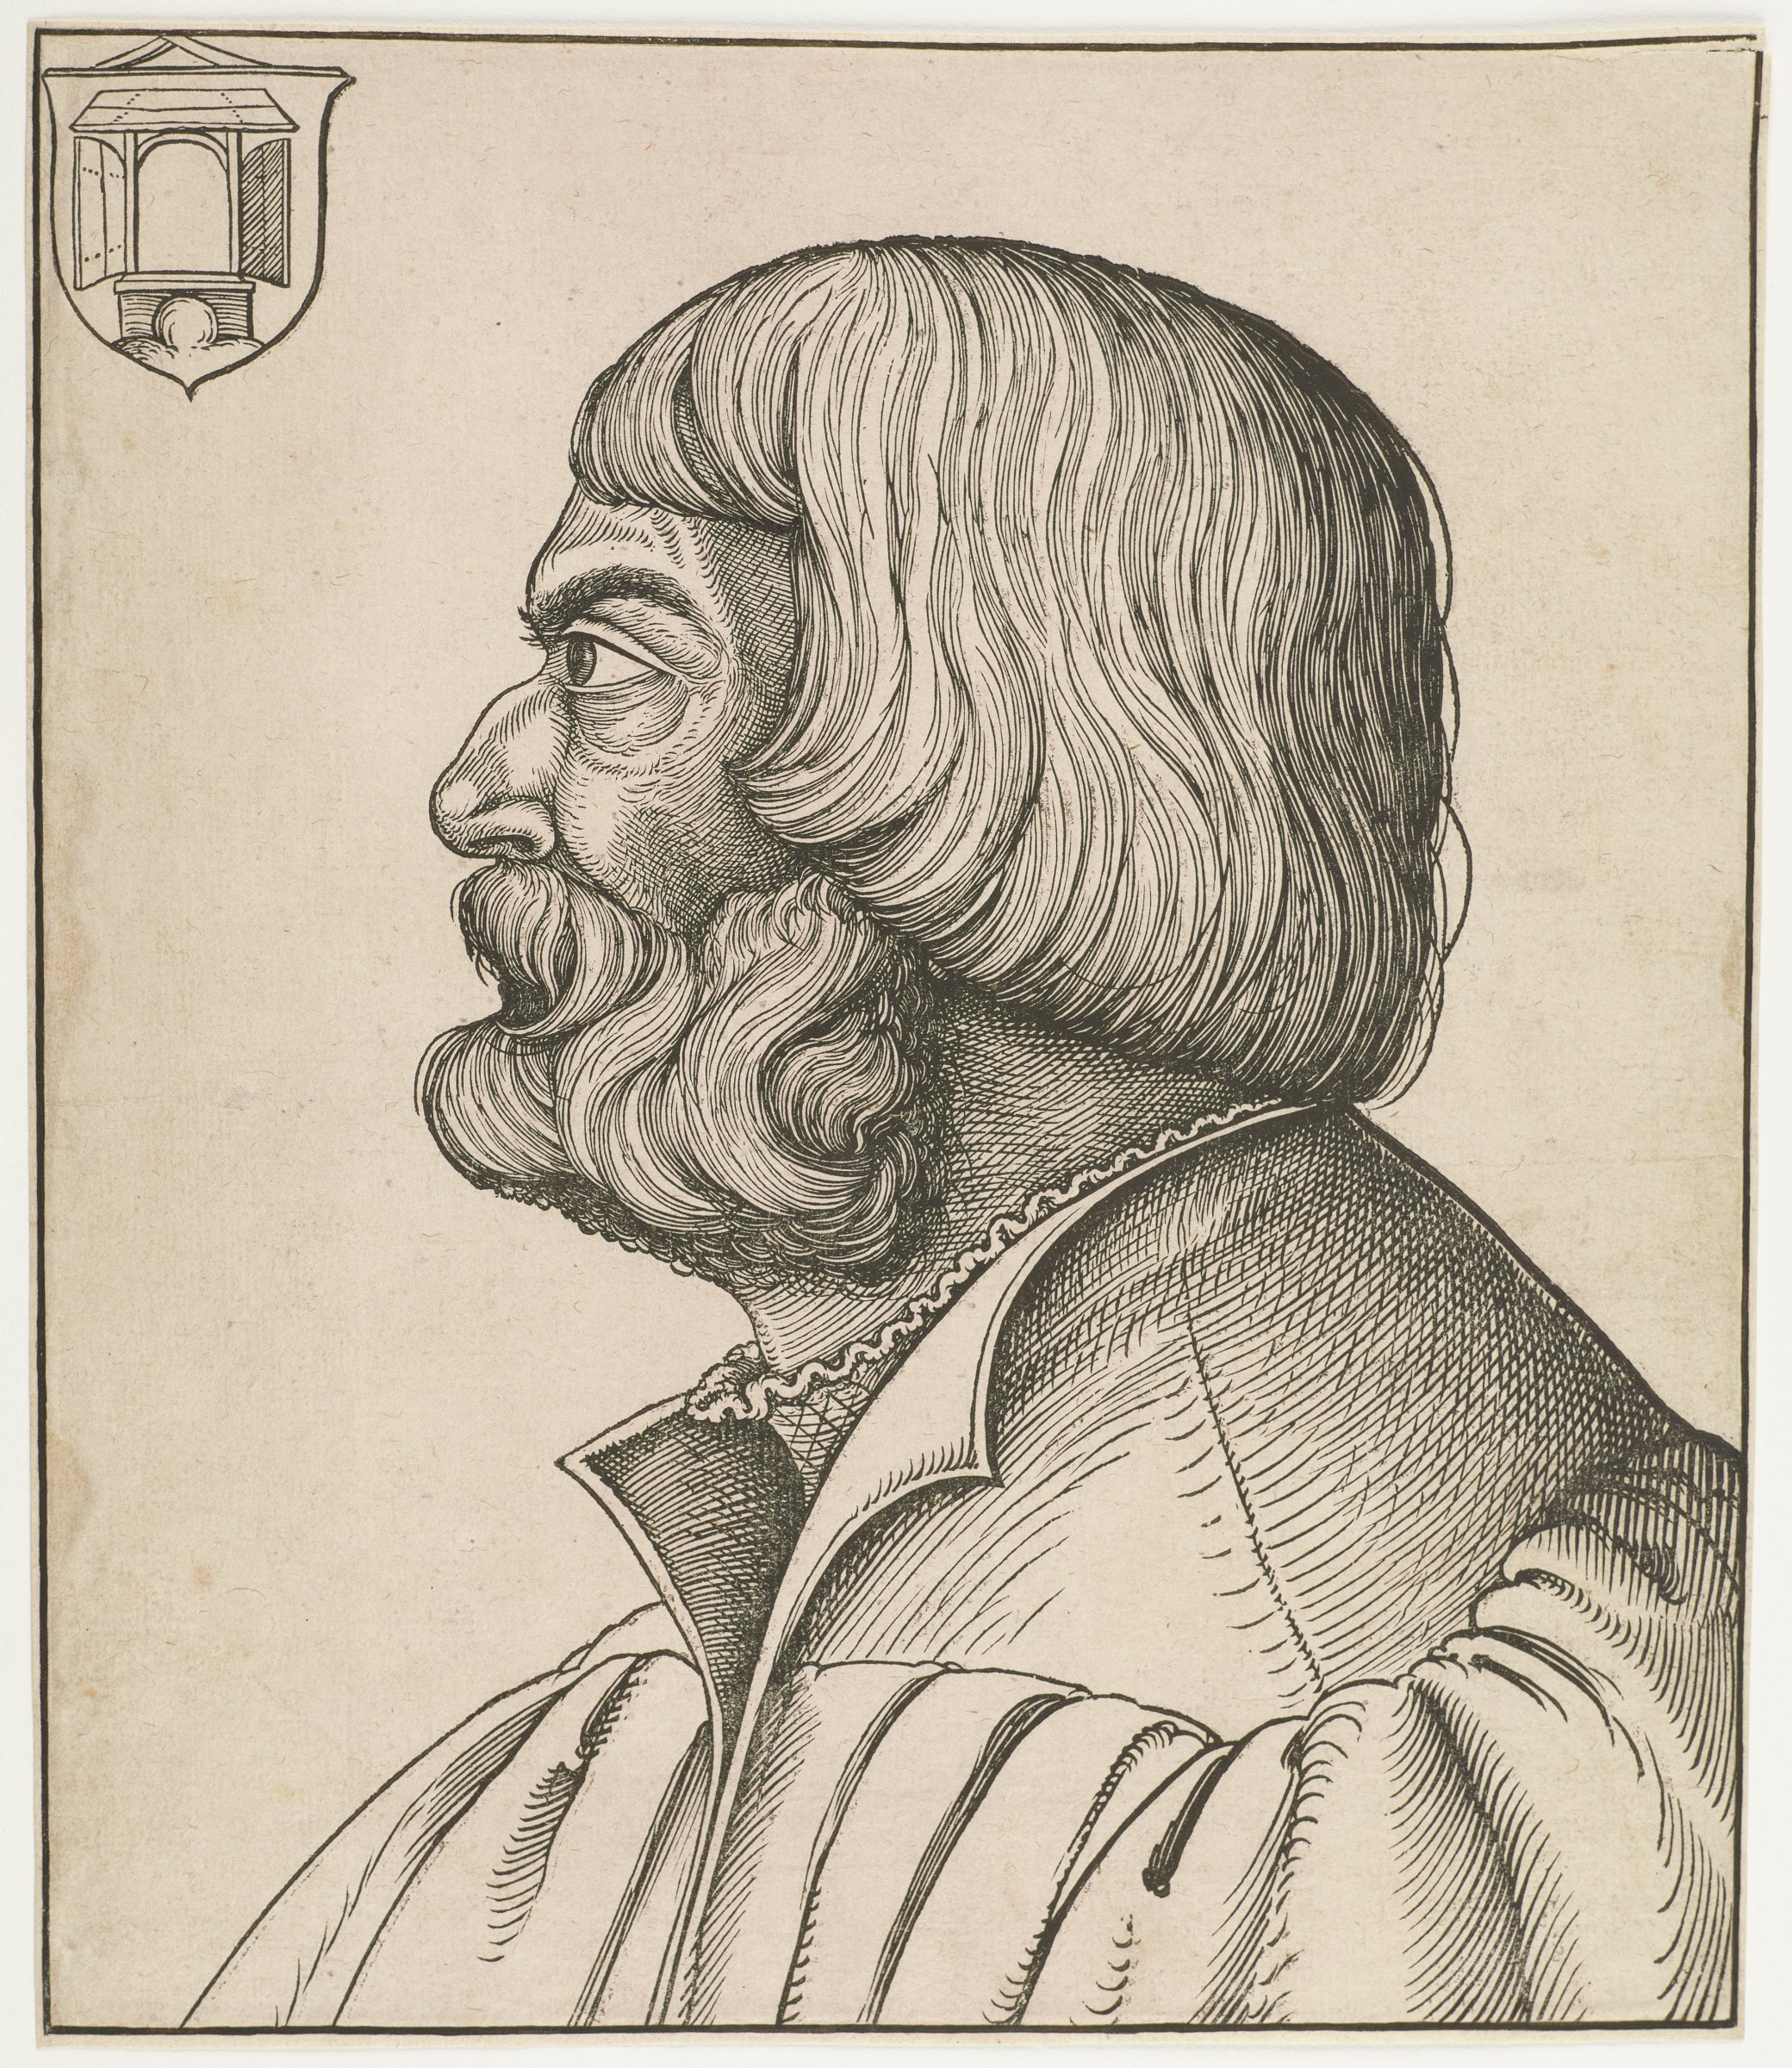 Bust portrait of Albrecht Dürer in profile, turned to the left against an empty background. In the top left corner is a coat of arms with a five square chequer board (cf. Meder 257)